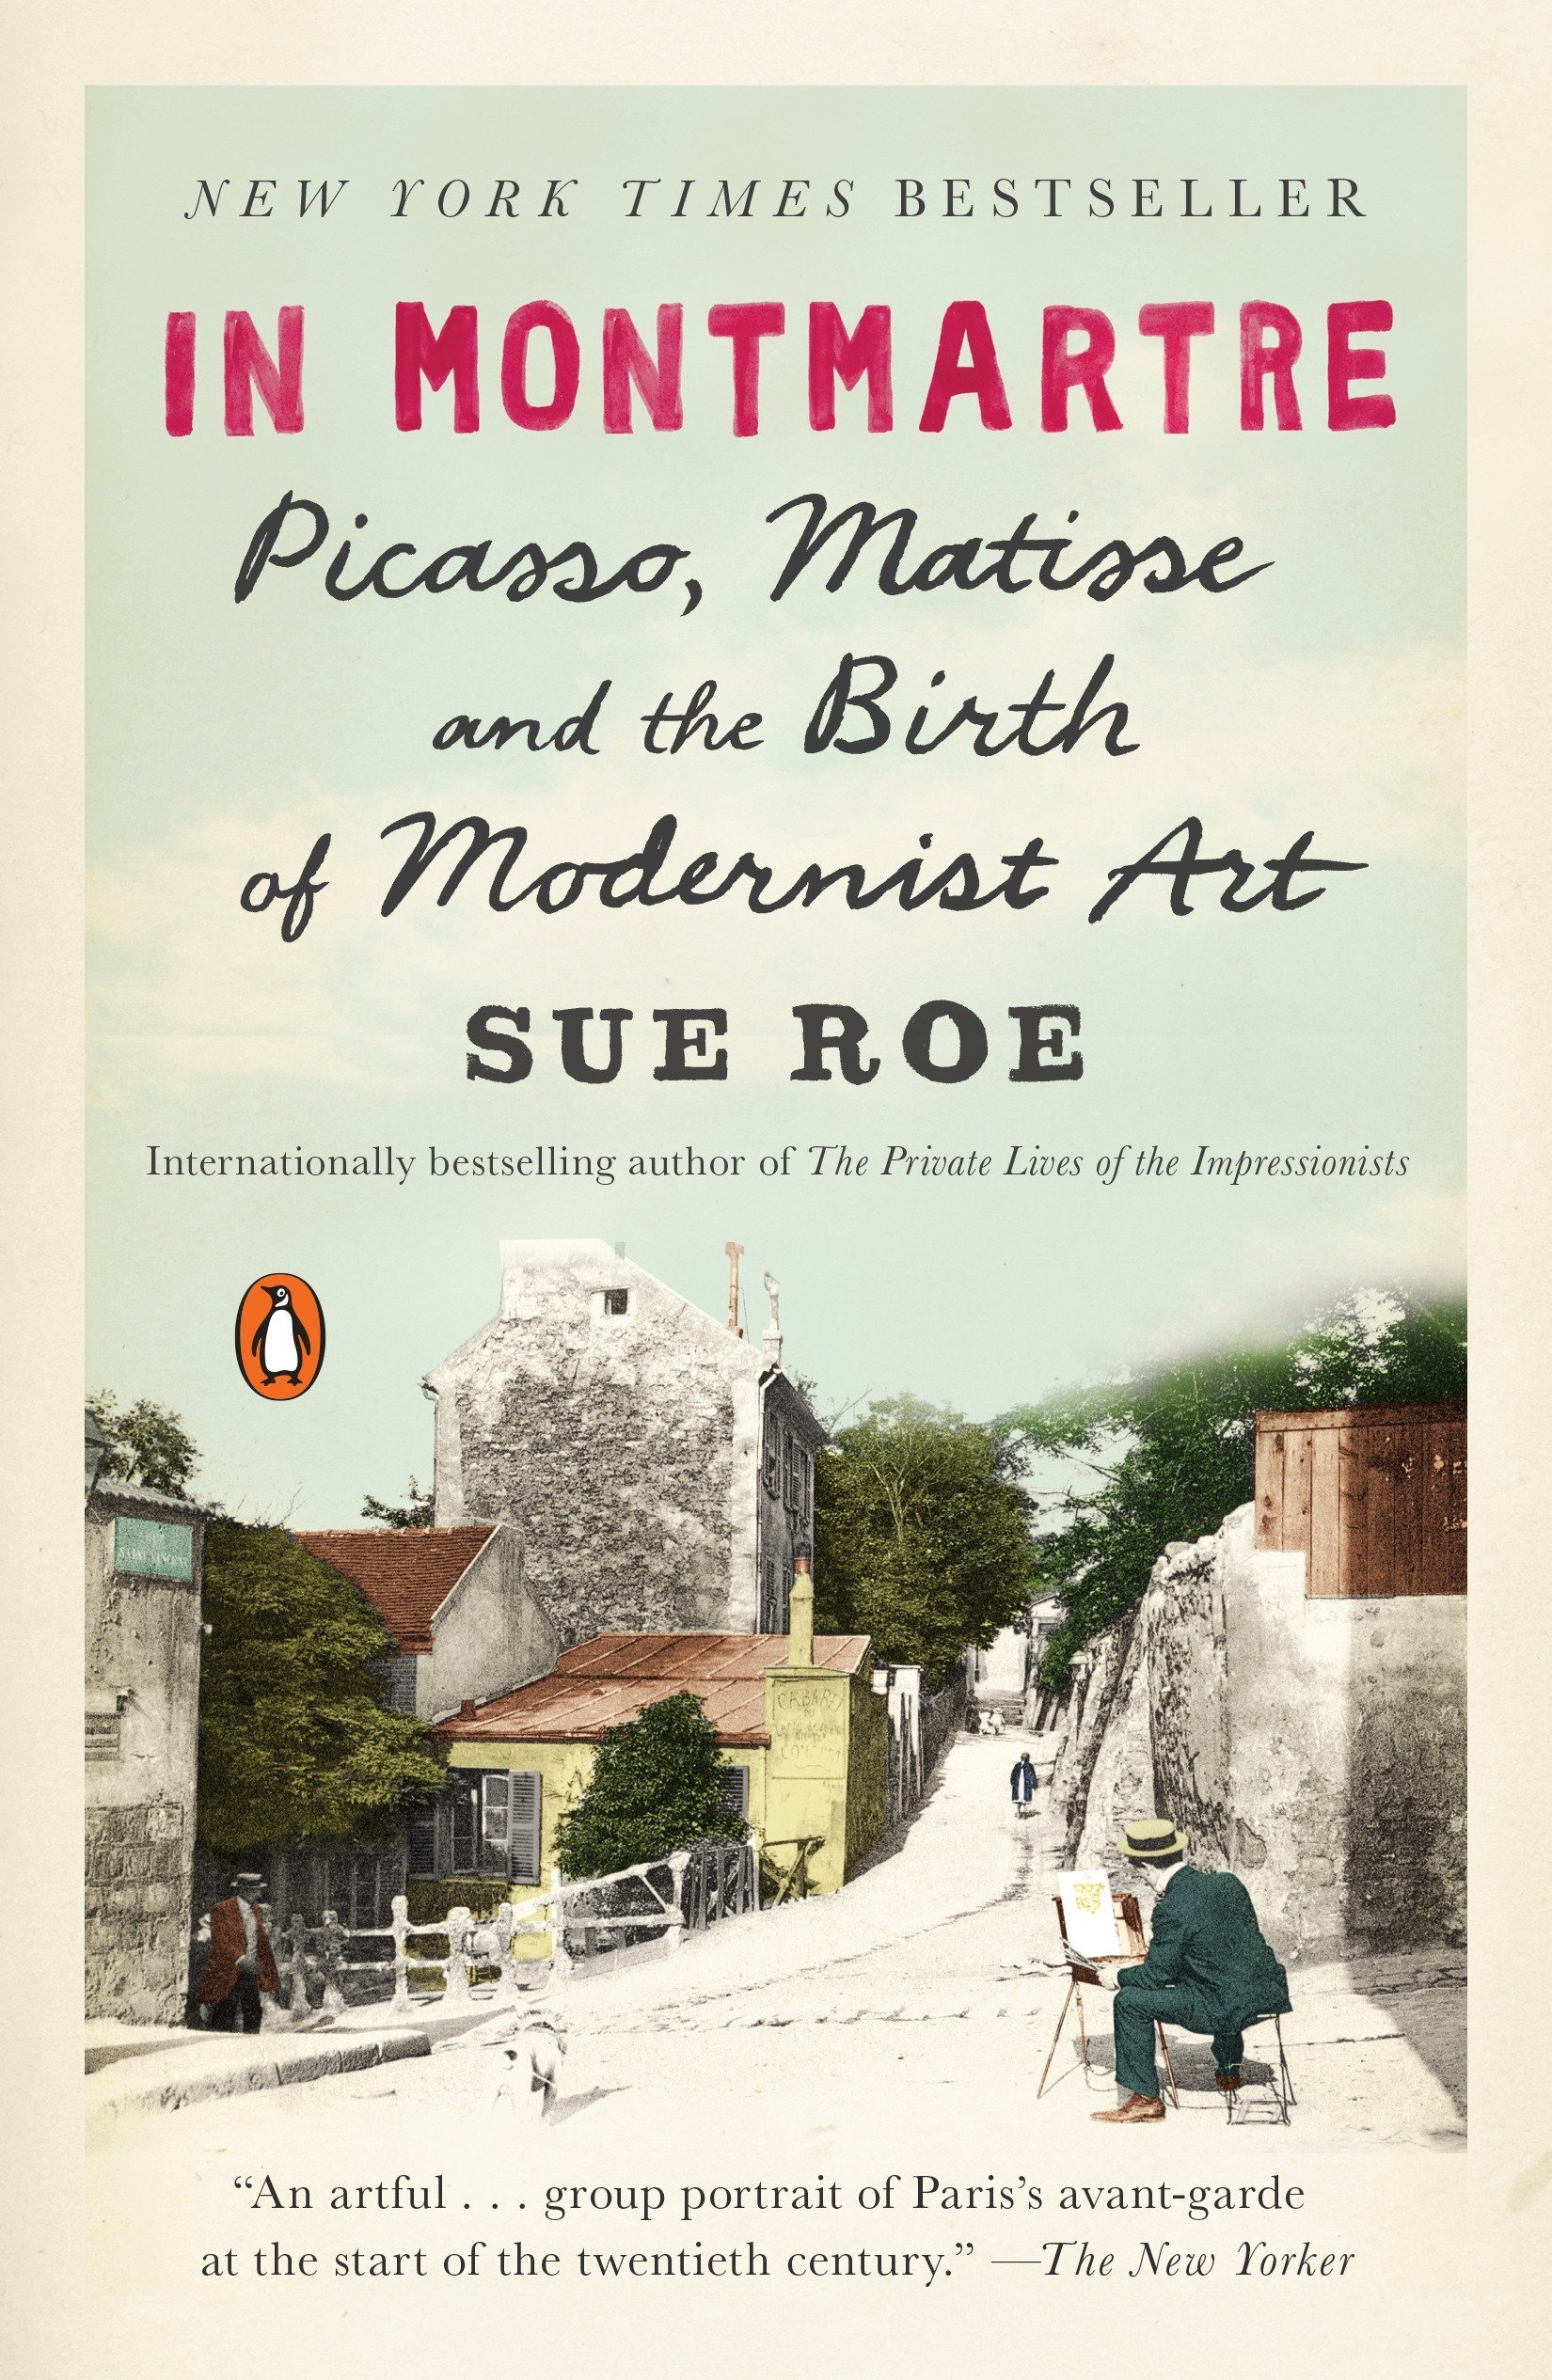 Amazon.com: In Montmartre: Picasso, Matisse and the Birth of Modernist Art  (9780143108122): Roe, Sue: Books